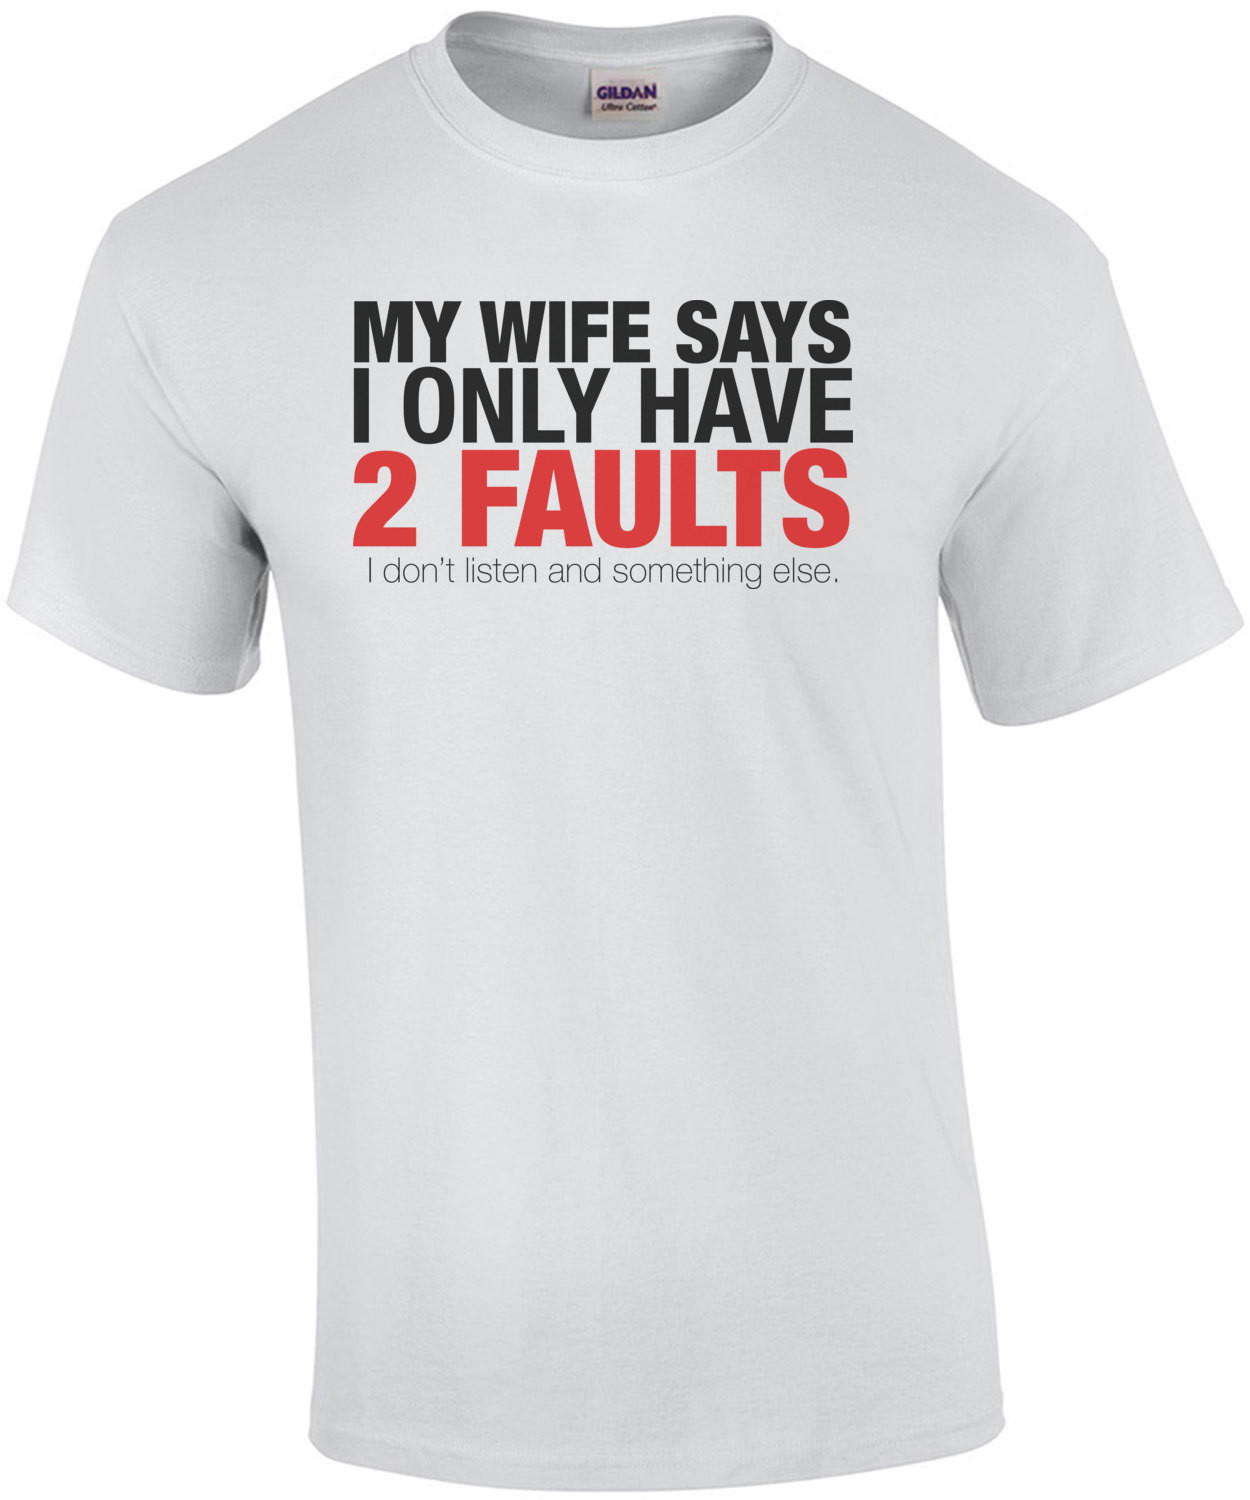 My Wife Says I Only Have 2 Faults Funny Shirt